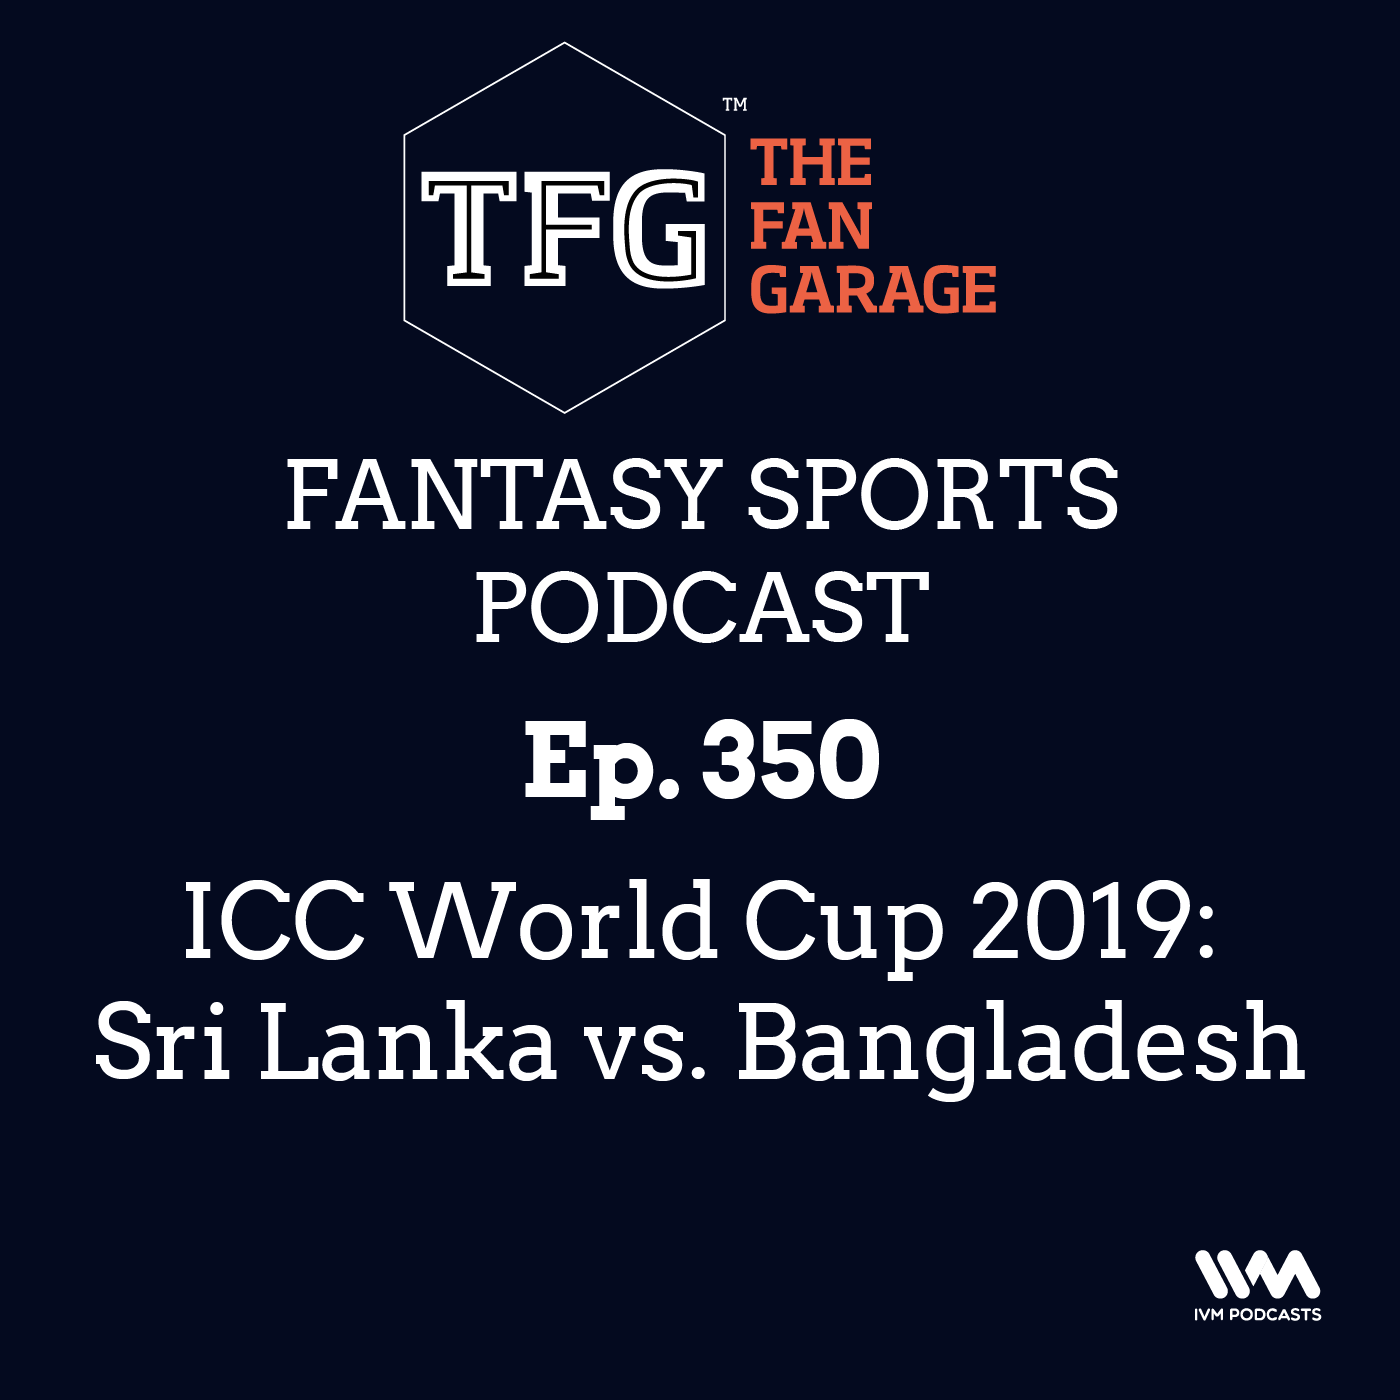 TFG Fantasy Sports Podcast Ep. 350: ICC World Cup 2019: Sri Lanka vs. Bangladesh